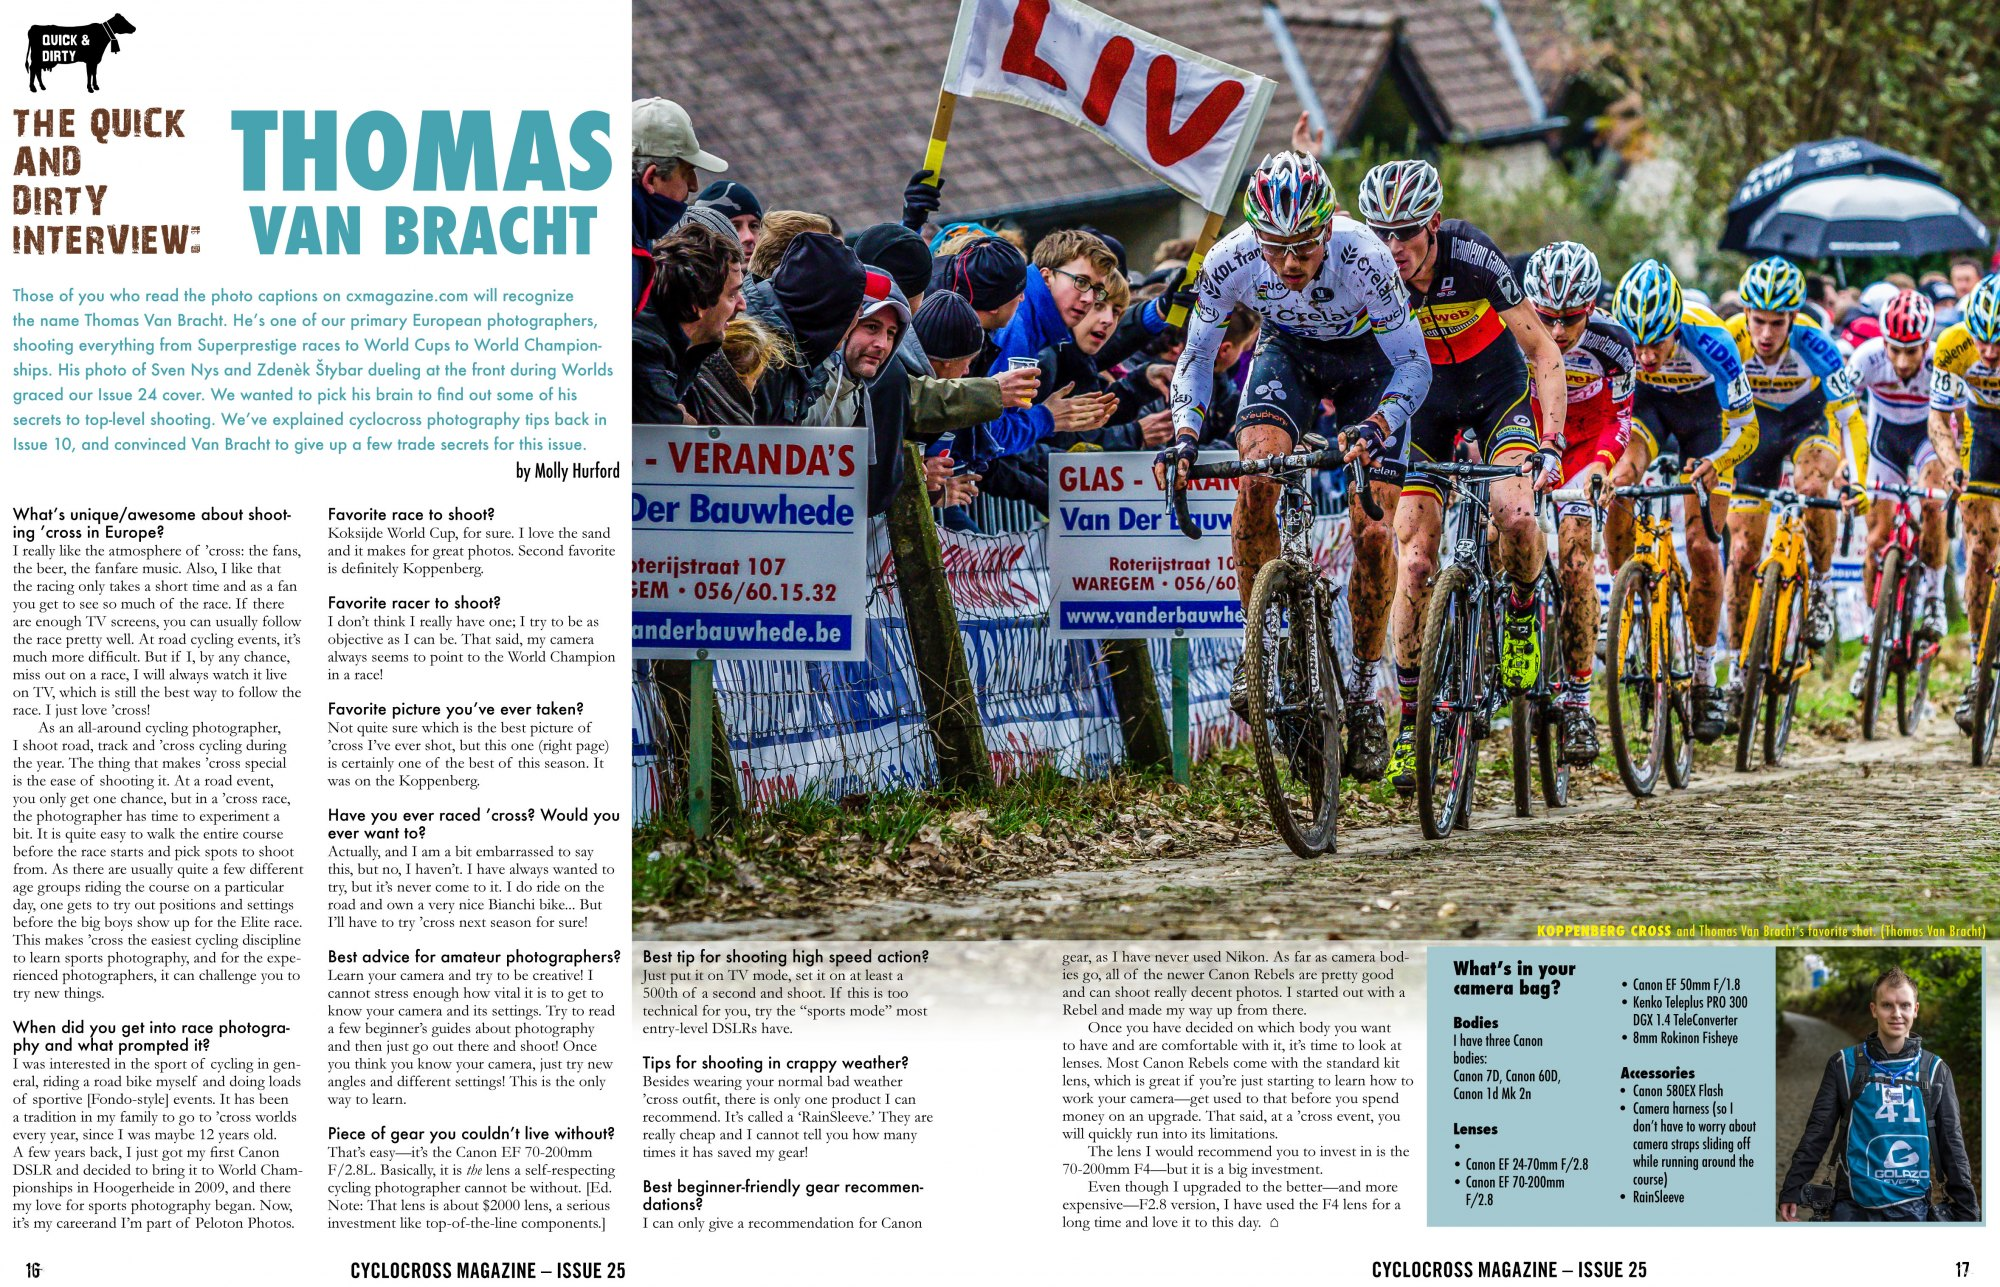 issue-25-quick-and-dirty-interview-with-thomas-van-bracht-